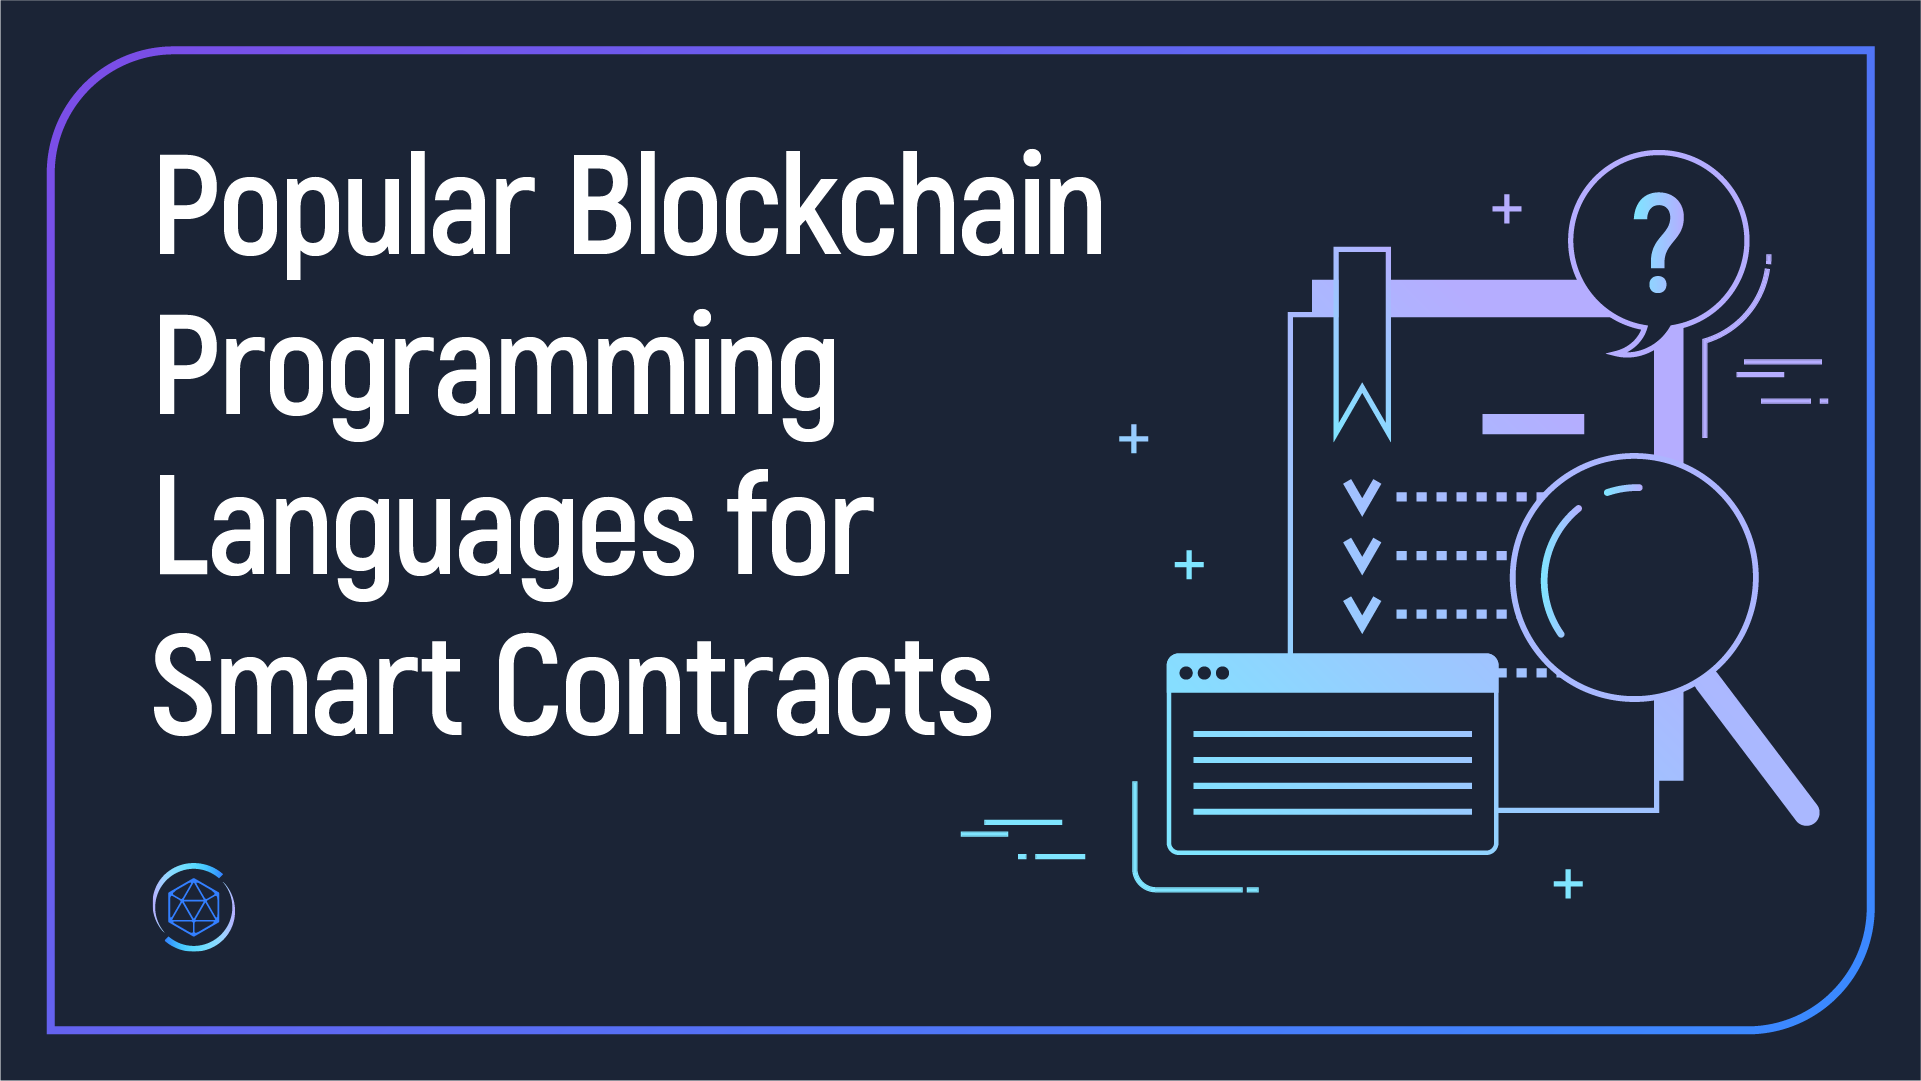 6 Popular Blockchain Programming Languages Used for Building